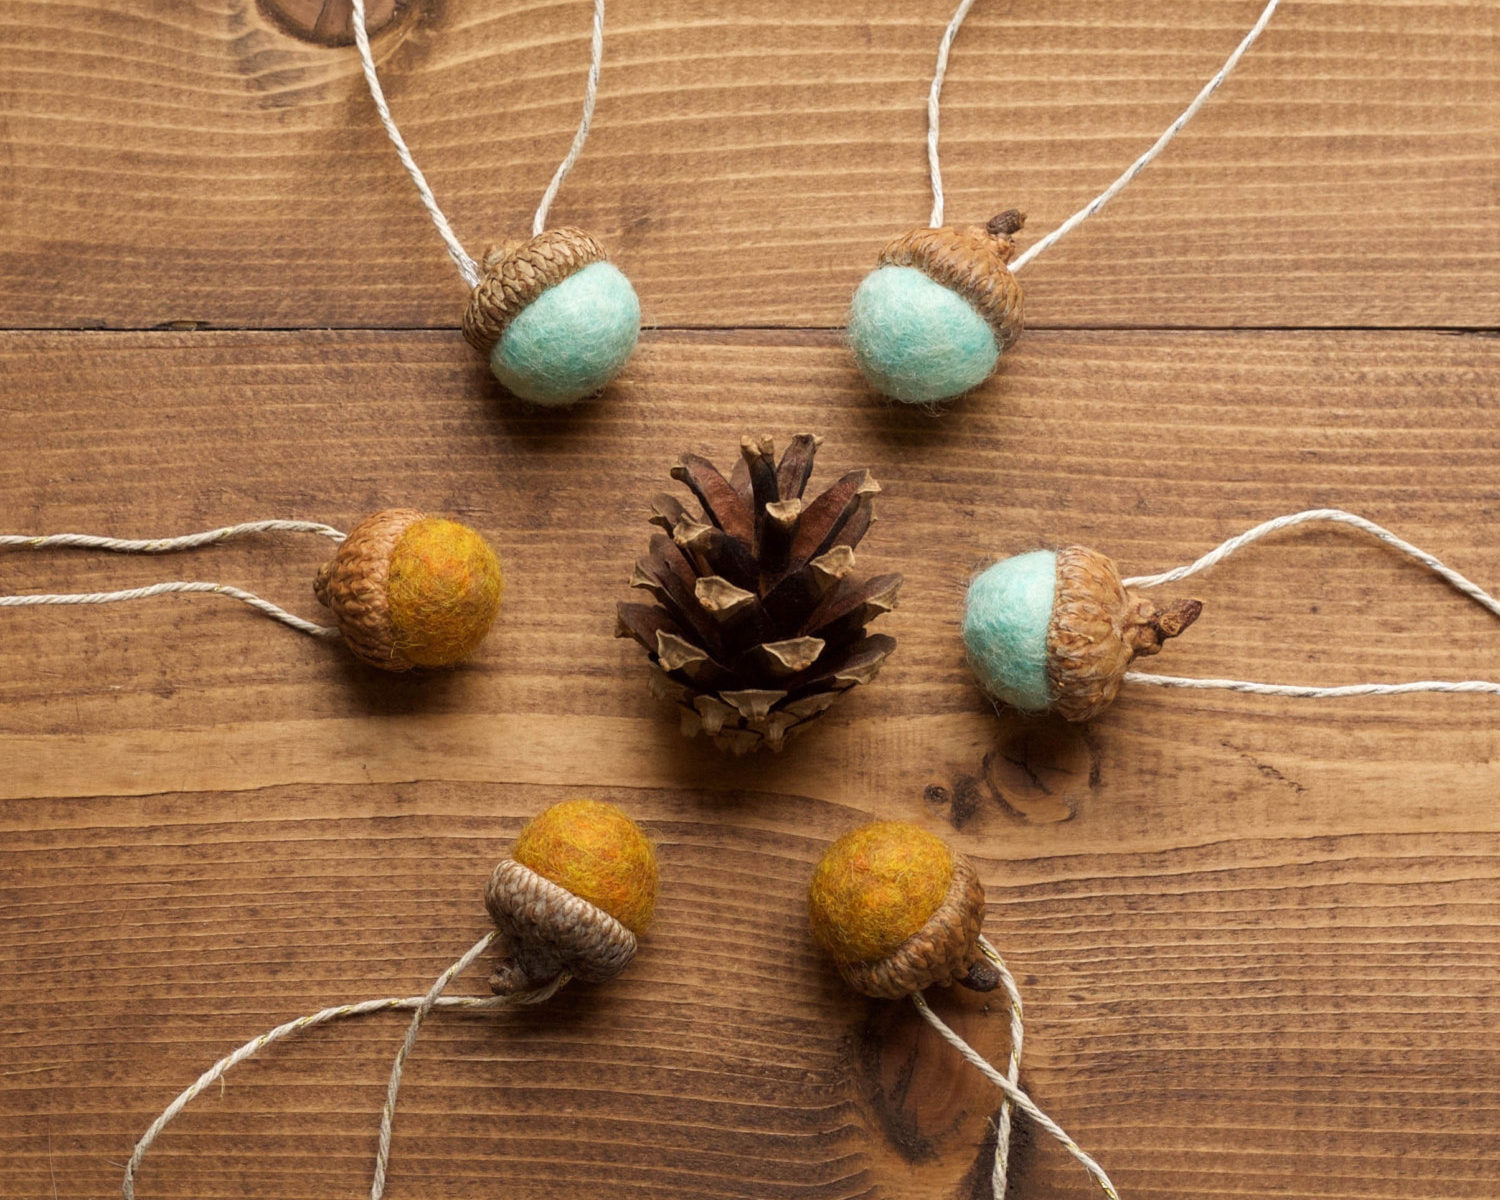 Felt Acorn Christmas Ornaments in Mustard and Mint, Wool Felted Acorns, Fall, Holiday Gift Tie On, Winter, Hostess Gift, Rustic, Favors